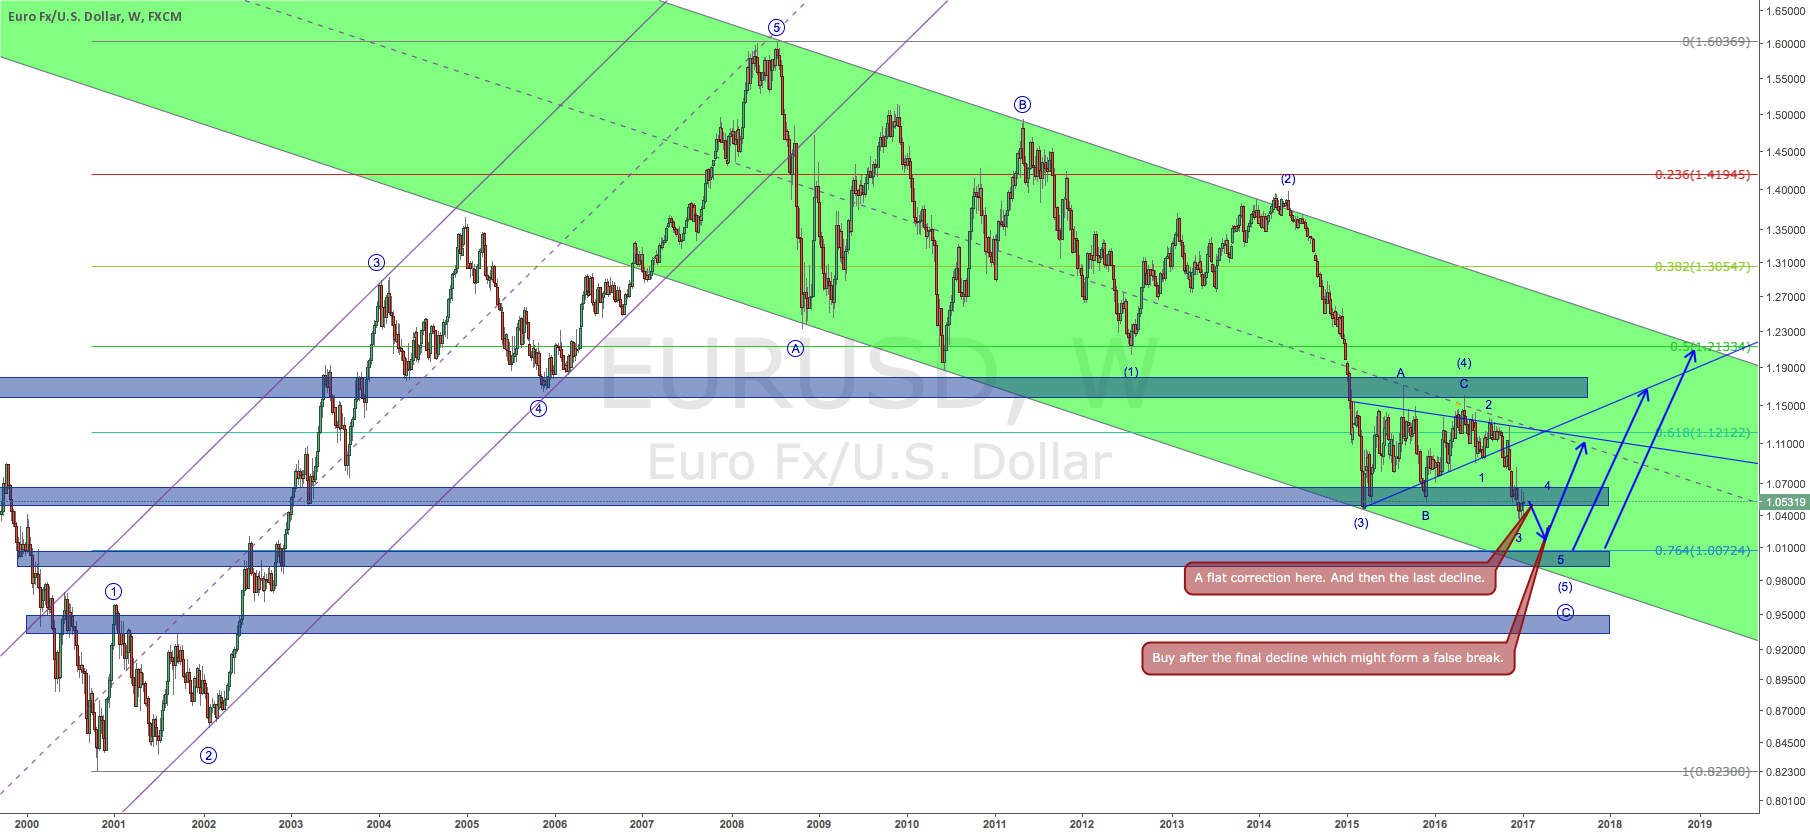 Outlook for EURUSD in 2017 (2017-01-08)